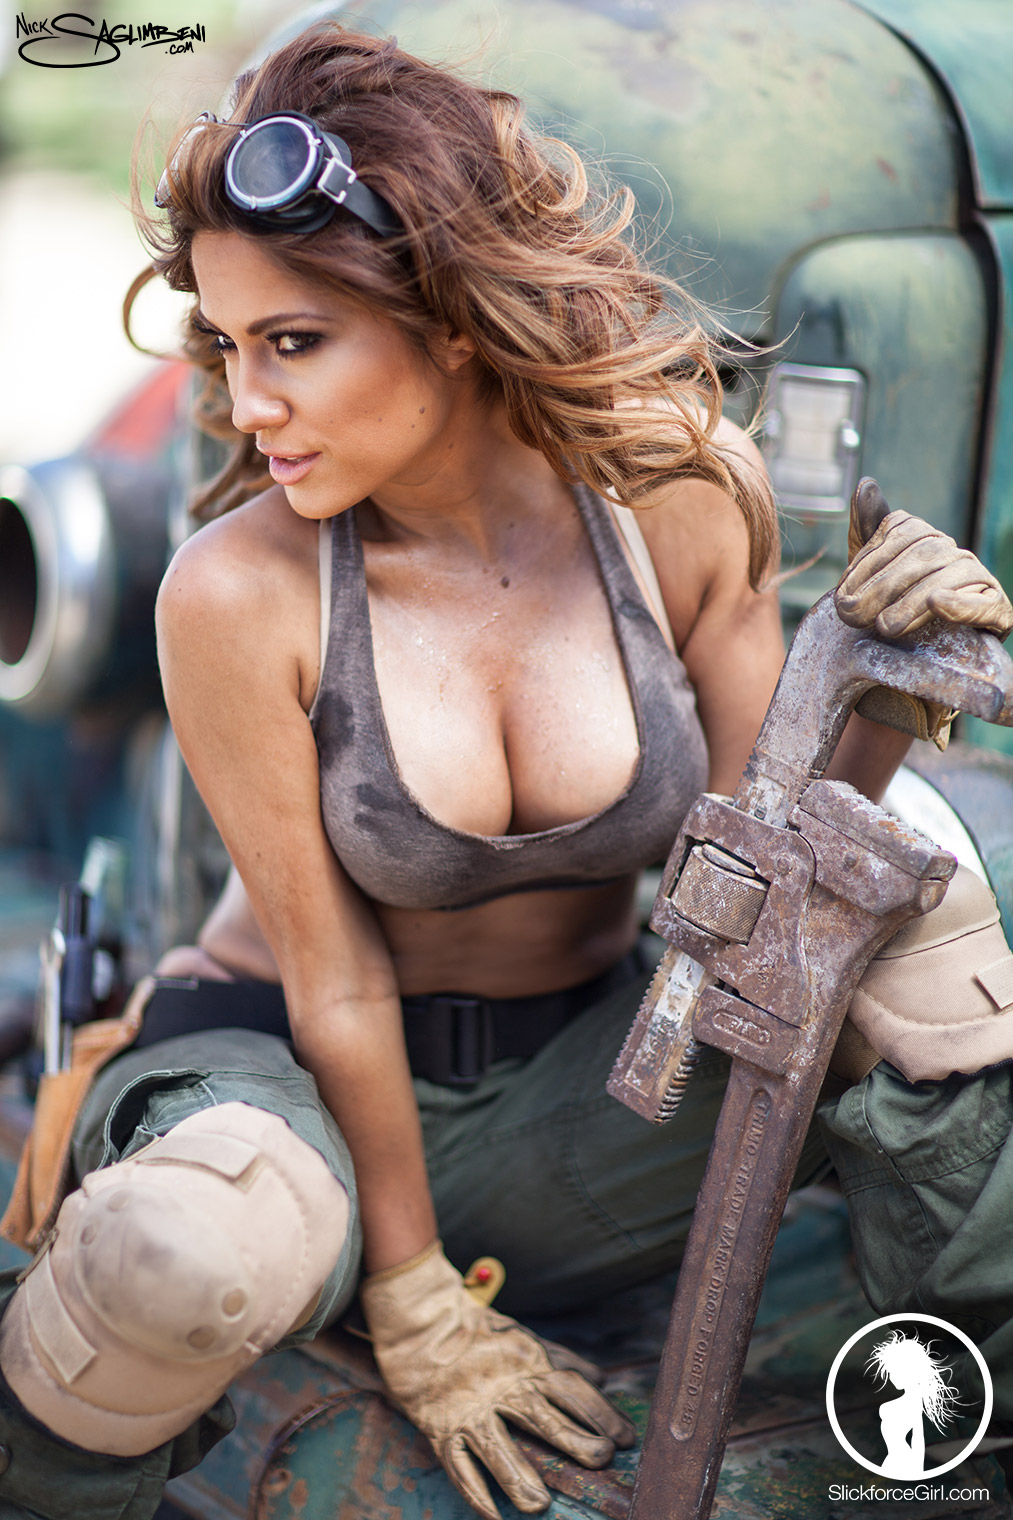 slickforcegirl-dirty-desert-mechanie-jessica-burciaga-nick-saglimbeni-slickforce-13